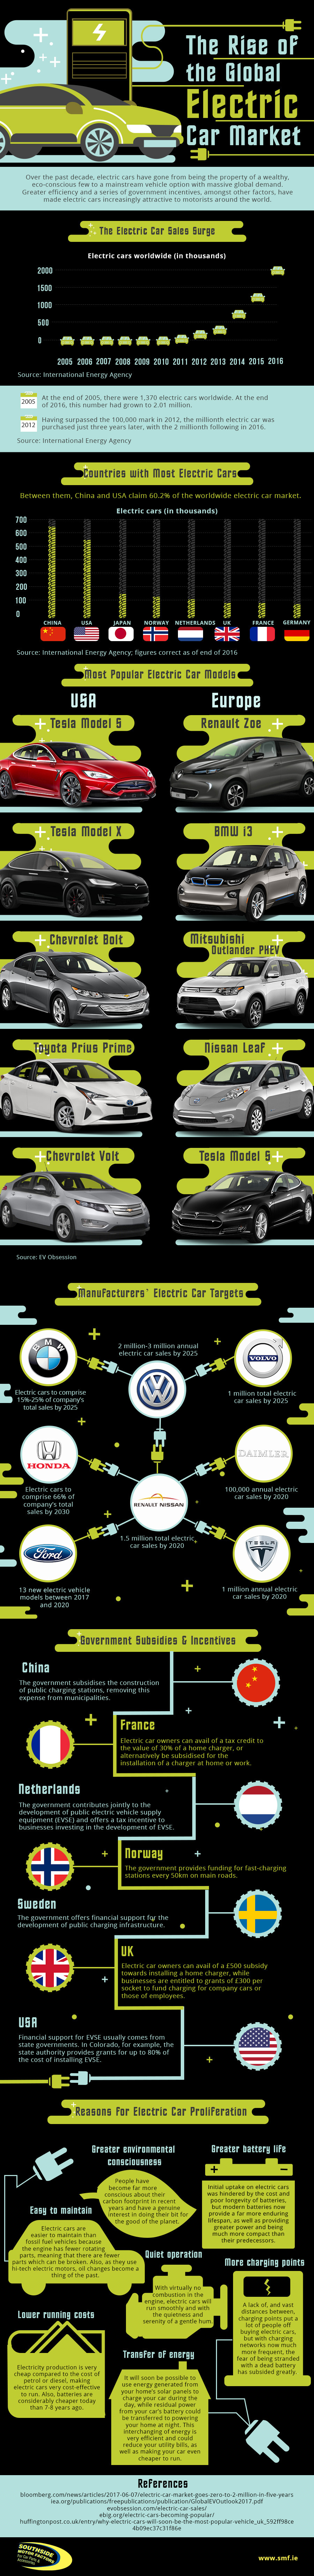 The Rise of the Global Electric Car Market (Infographic)